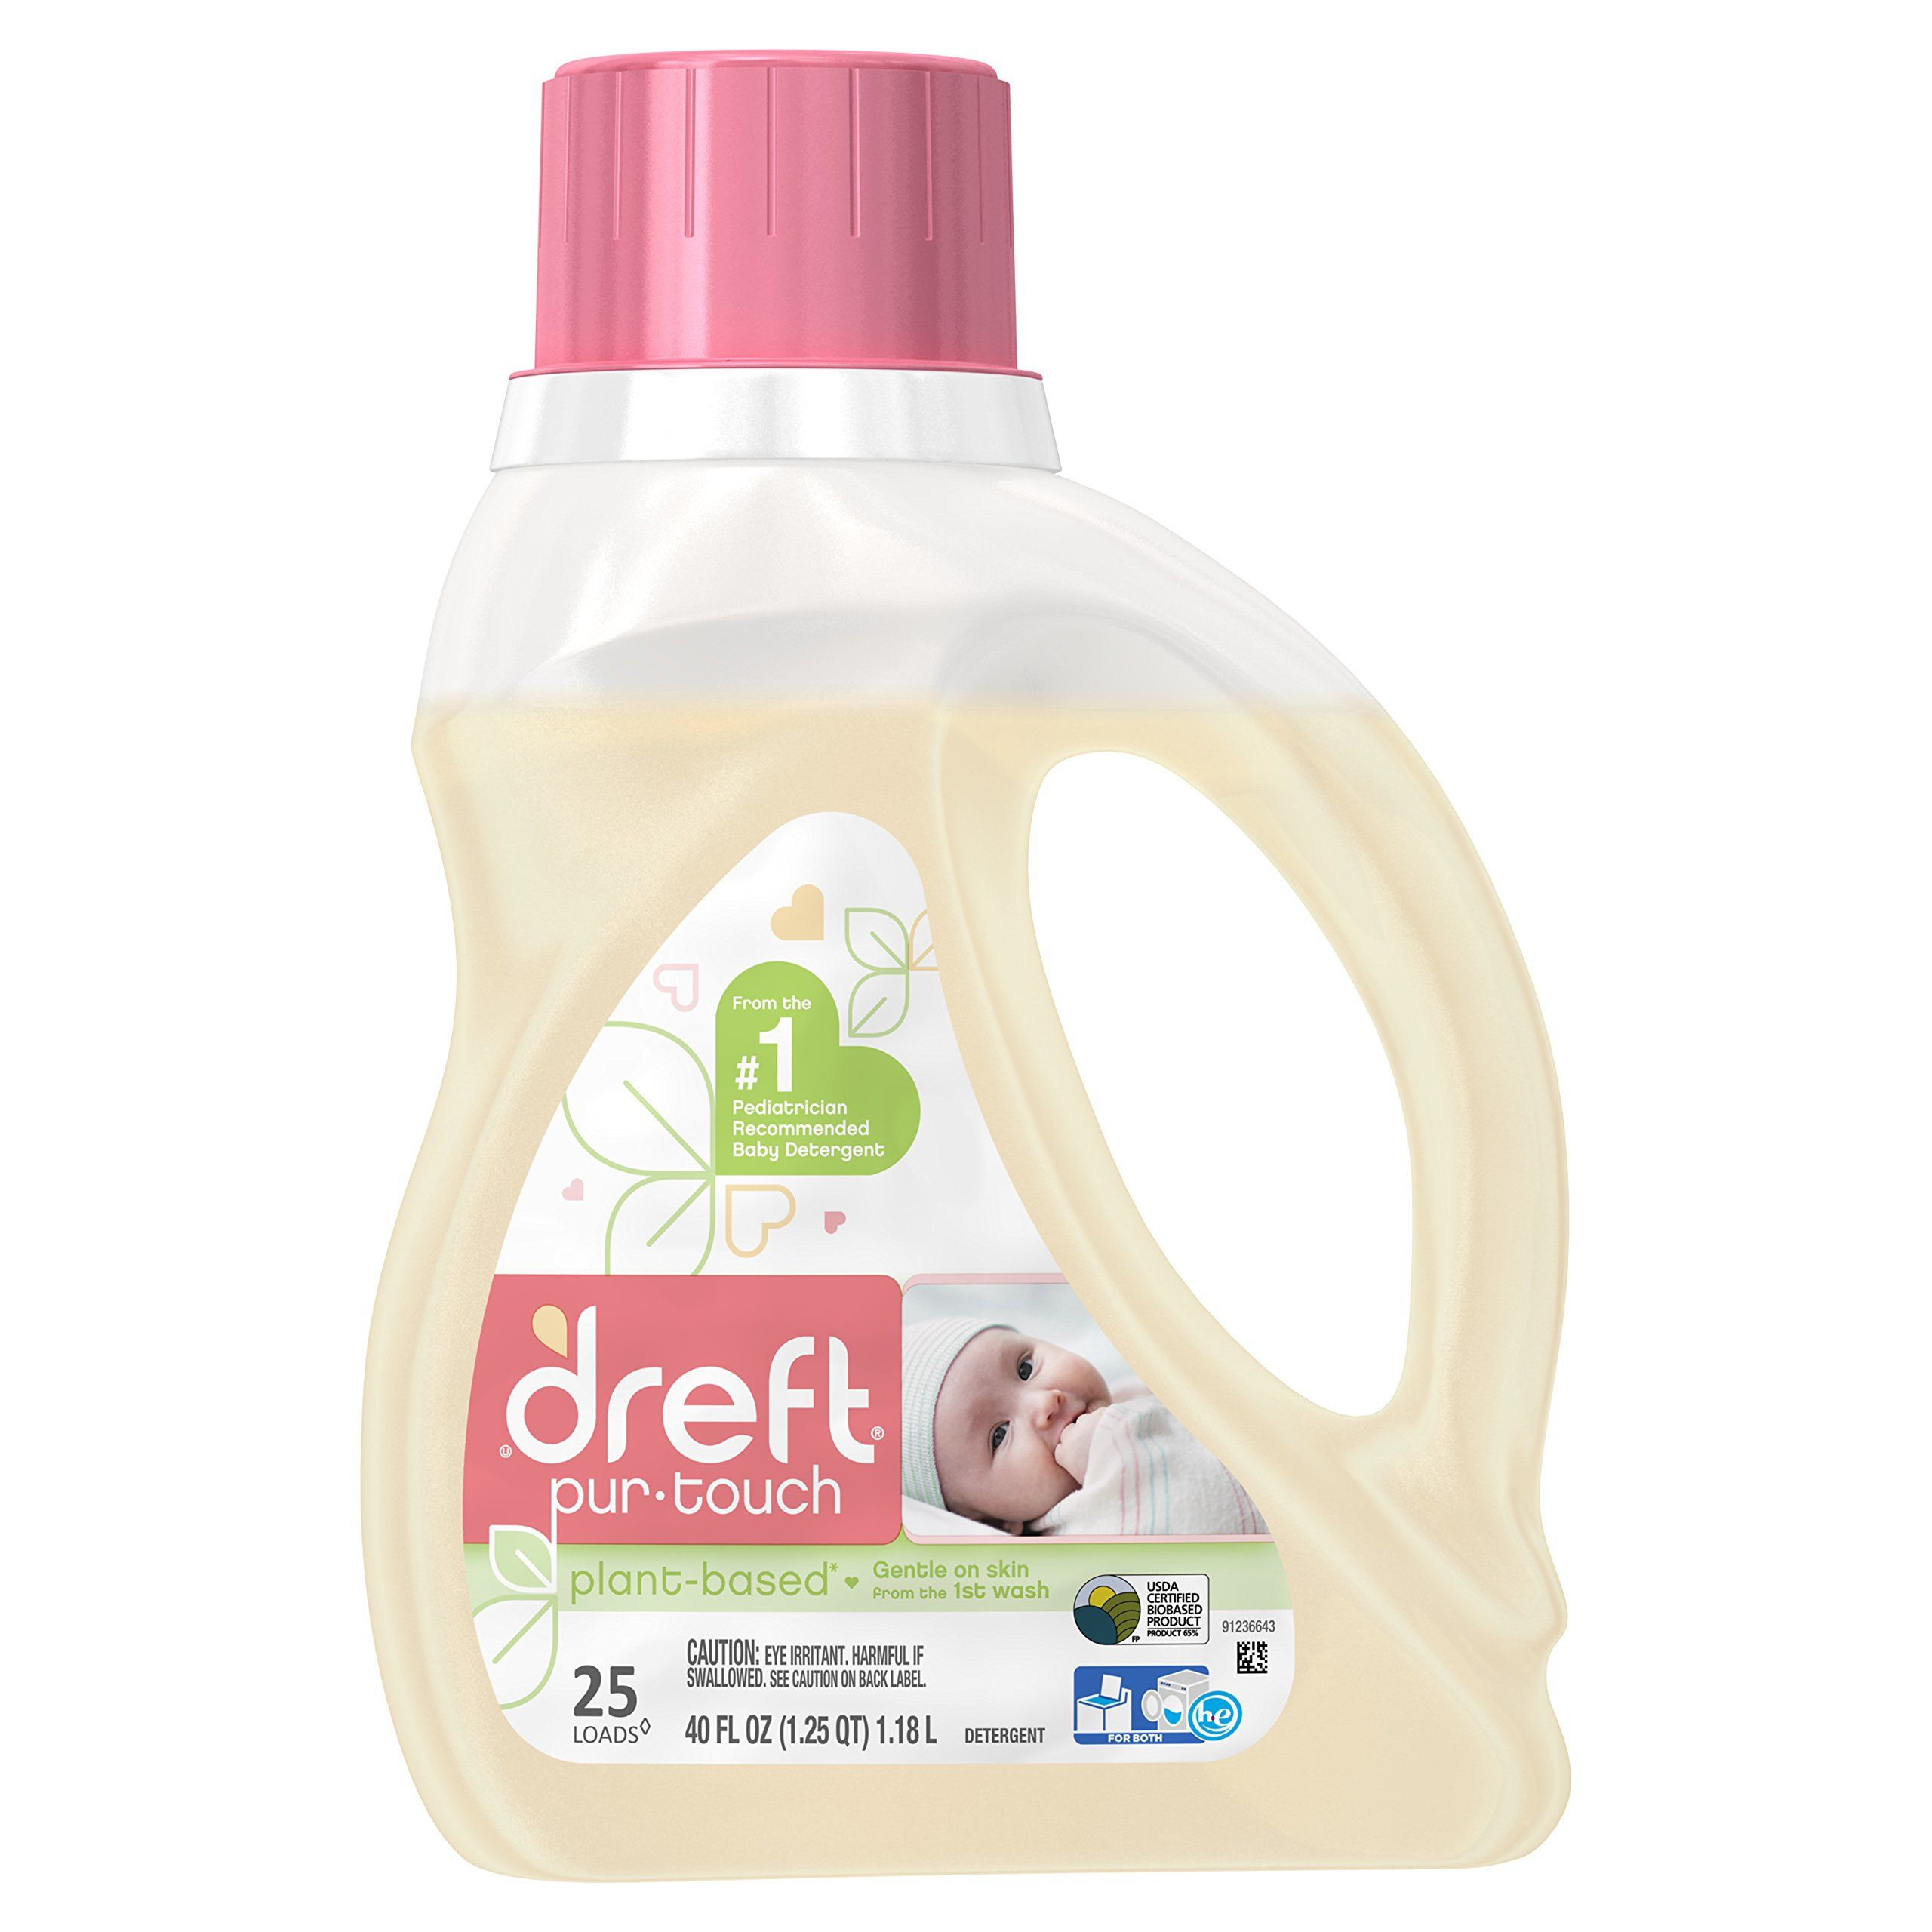 Dreft Purtouch Liquid Baby Laundry Detergent He Hypoallergenic And